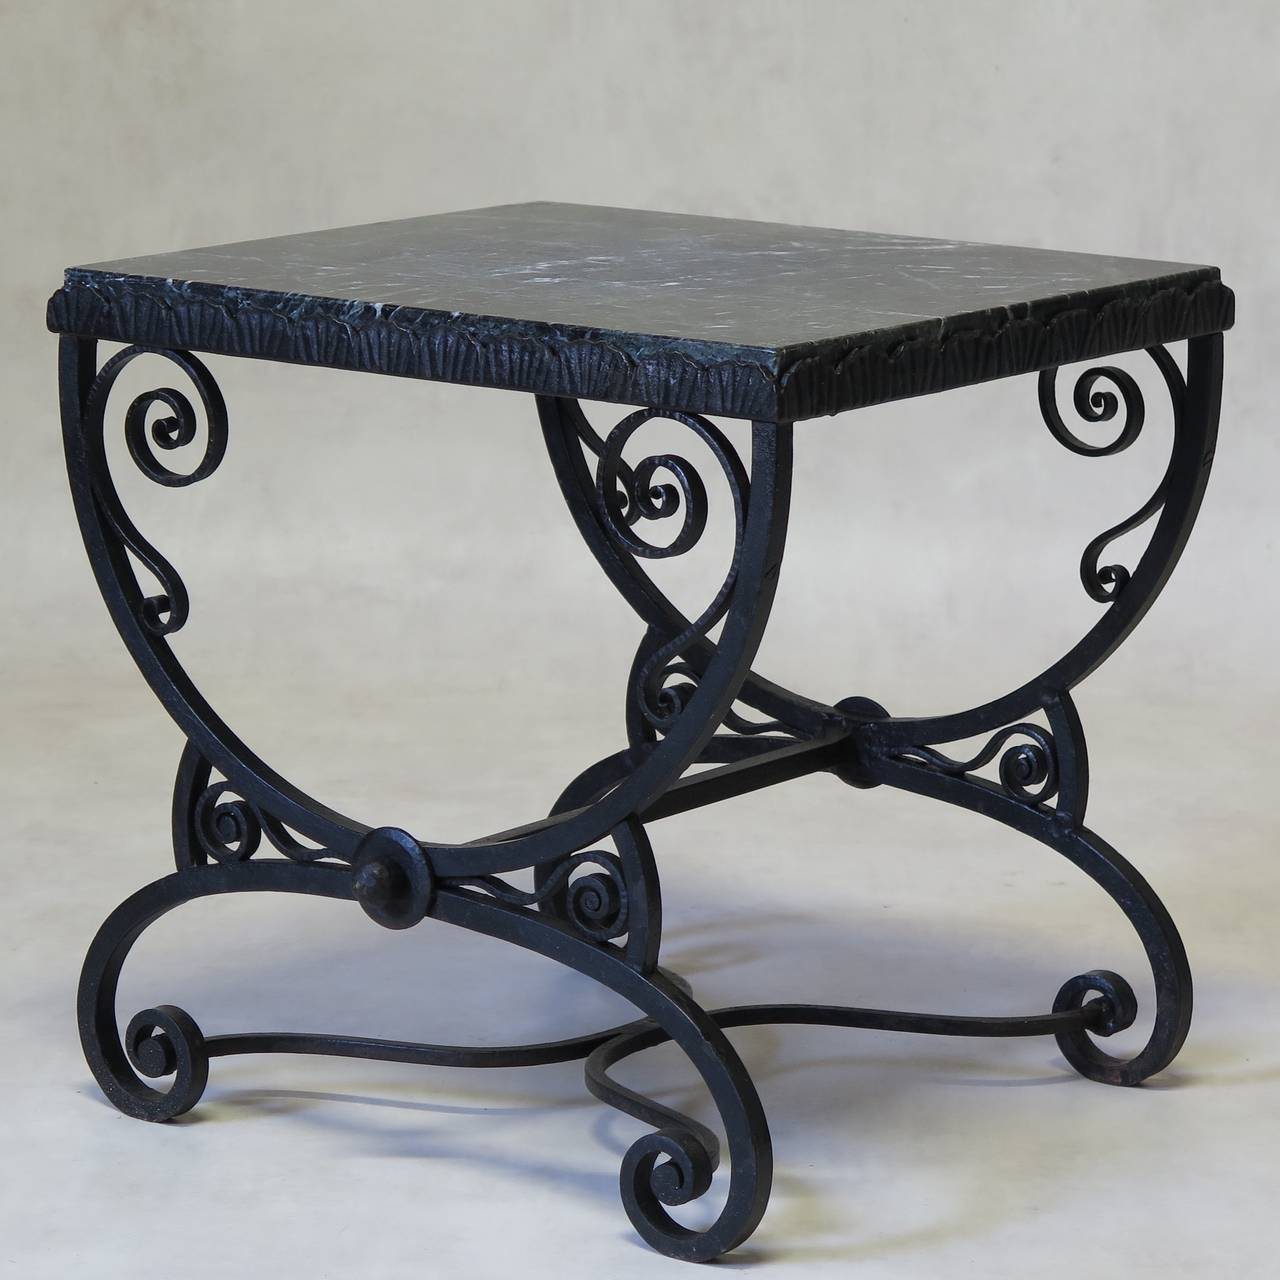 Small Art Deco Wrought Iron Table With Green Marble Top   France, 1930s 2